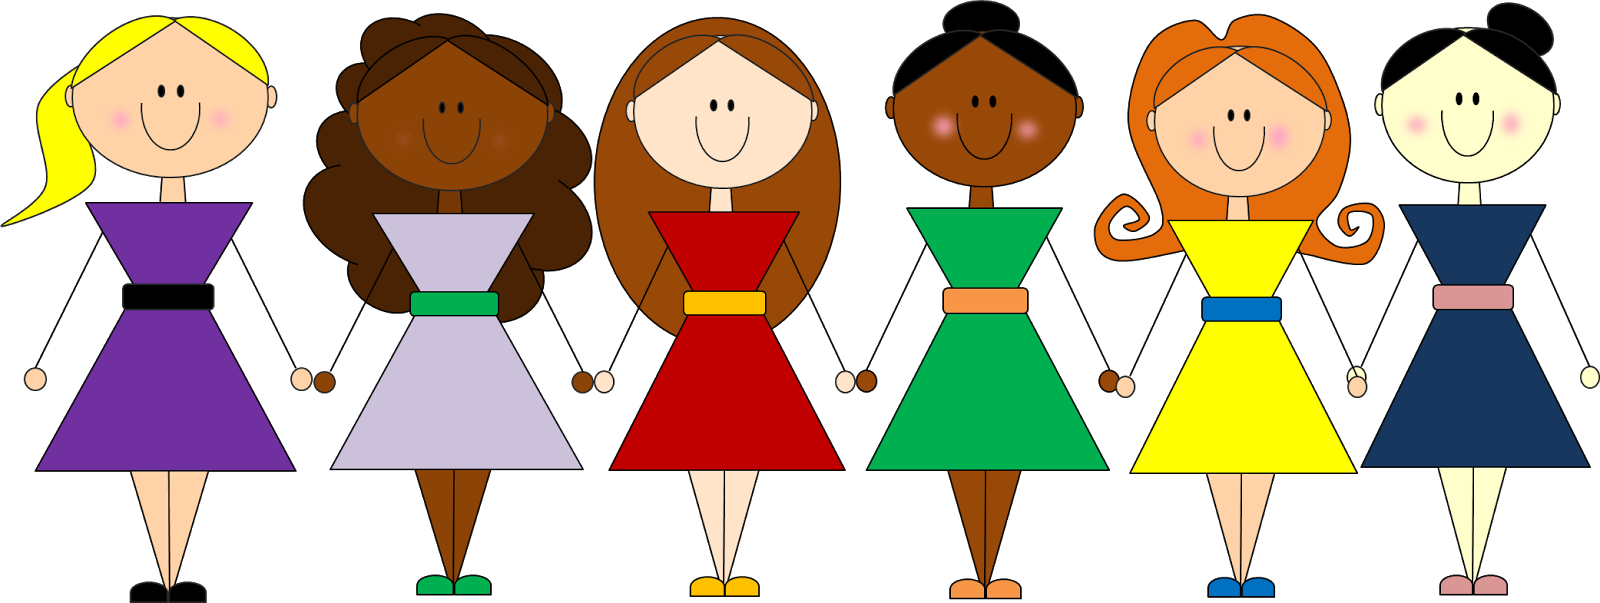 image freeuse  collection of girls. Group clipart friendship